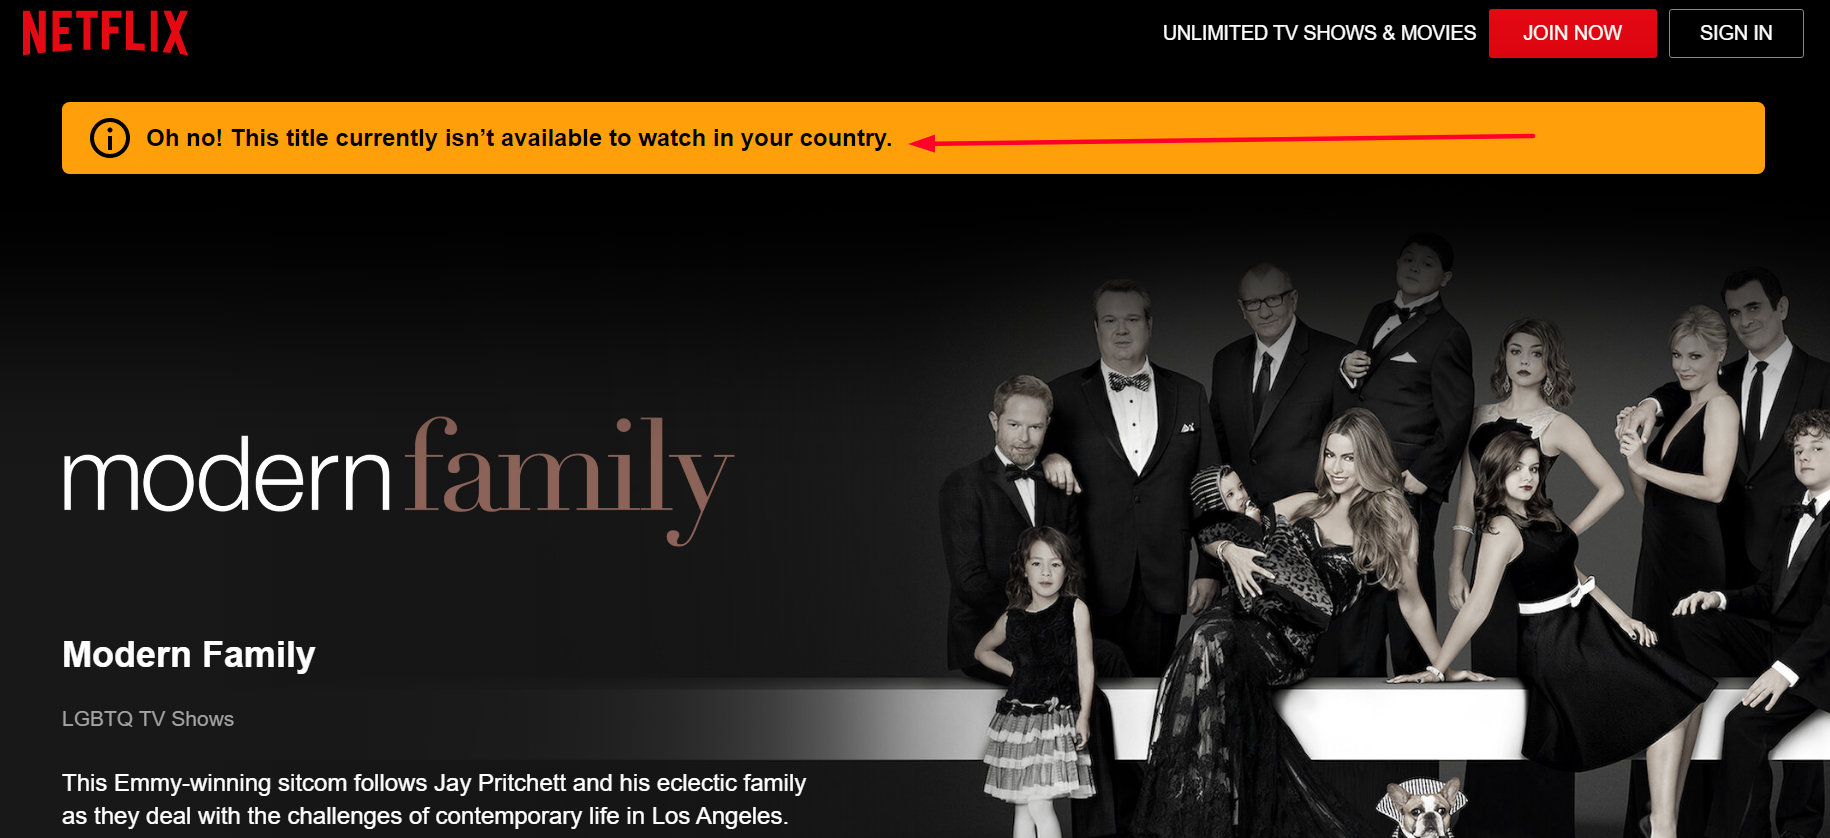 Modern Family On Netflix In The U.S.